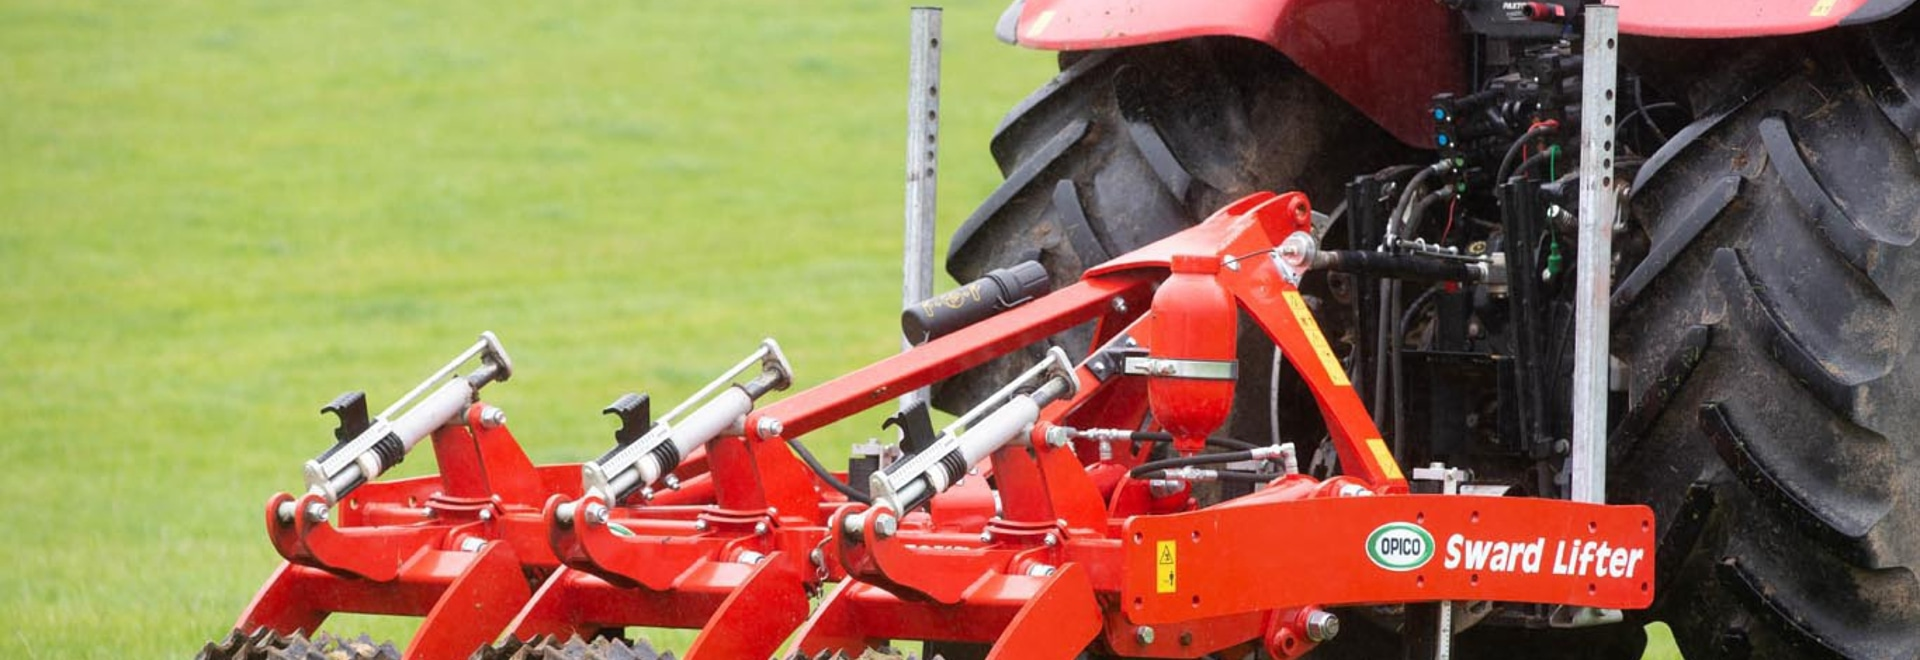 Re-designed Sward-Lifter is stronger and has better stone protection